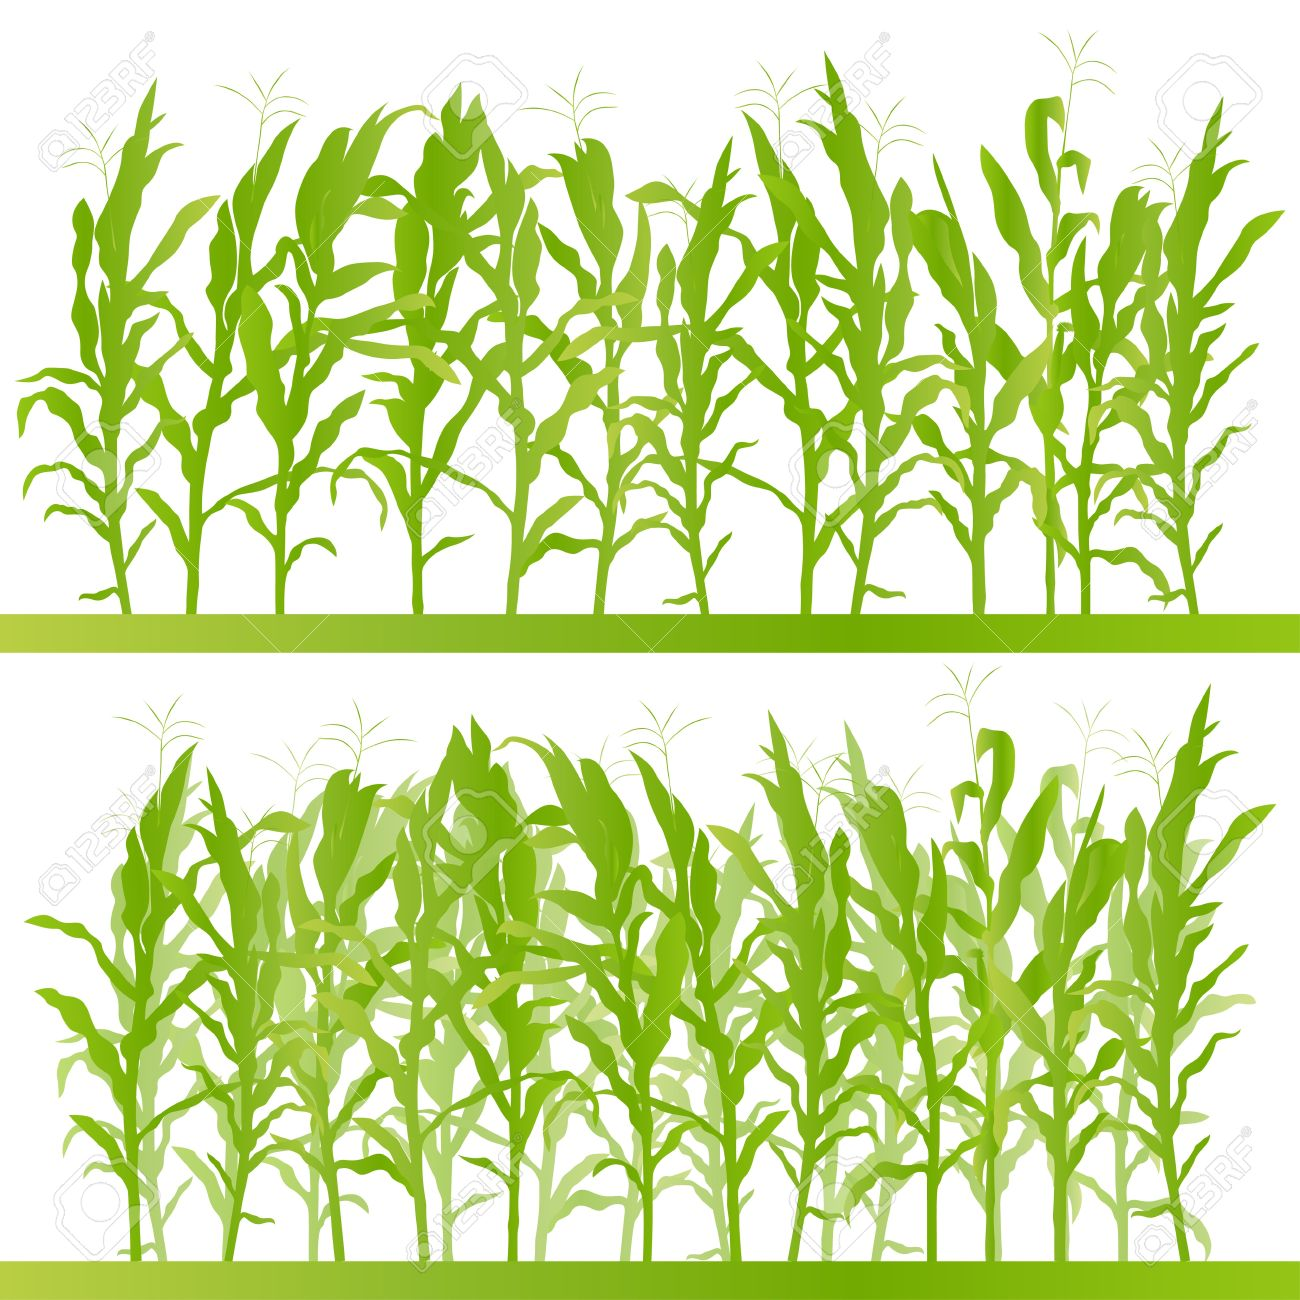 Cornfield clipart #15, Download drawings